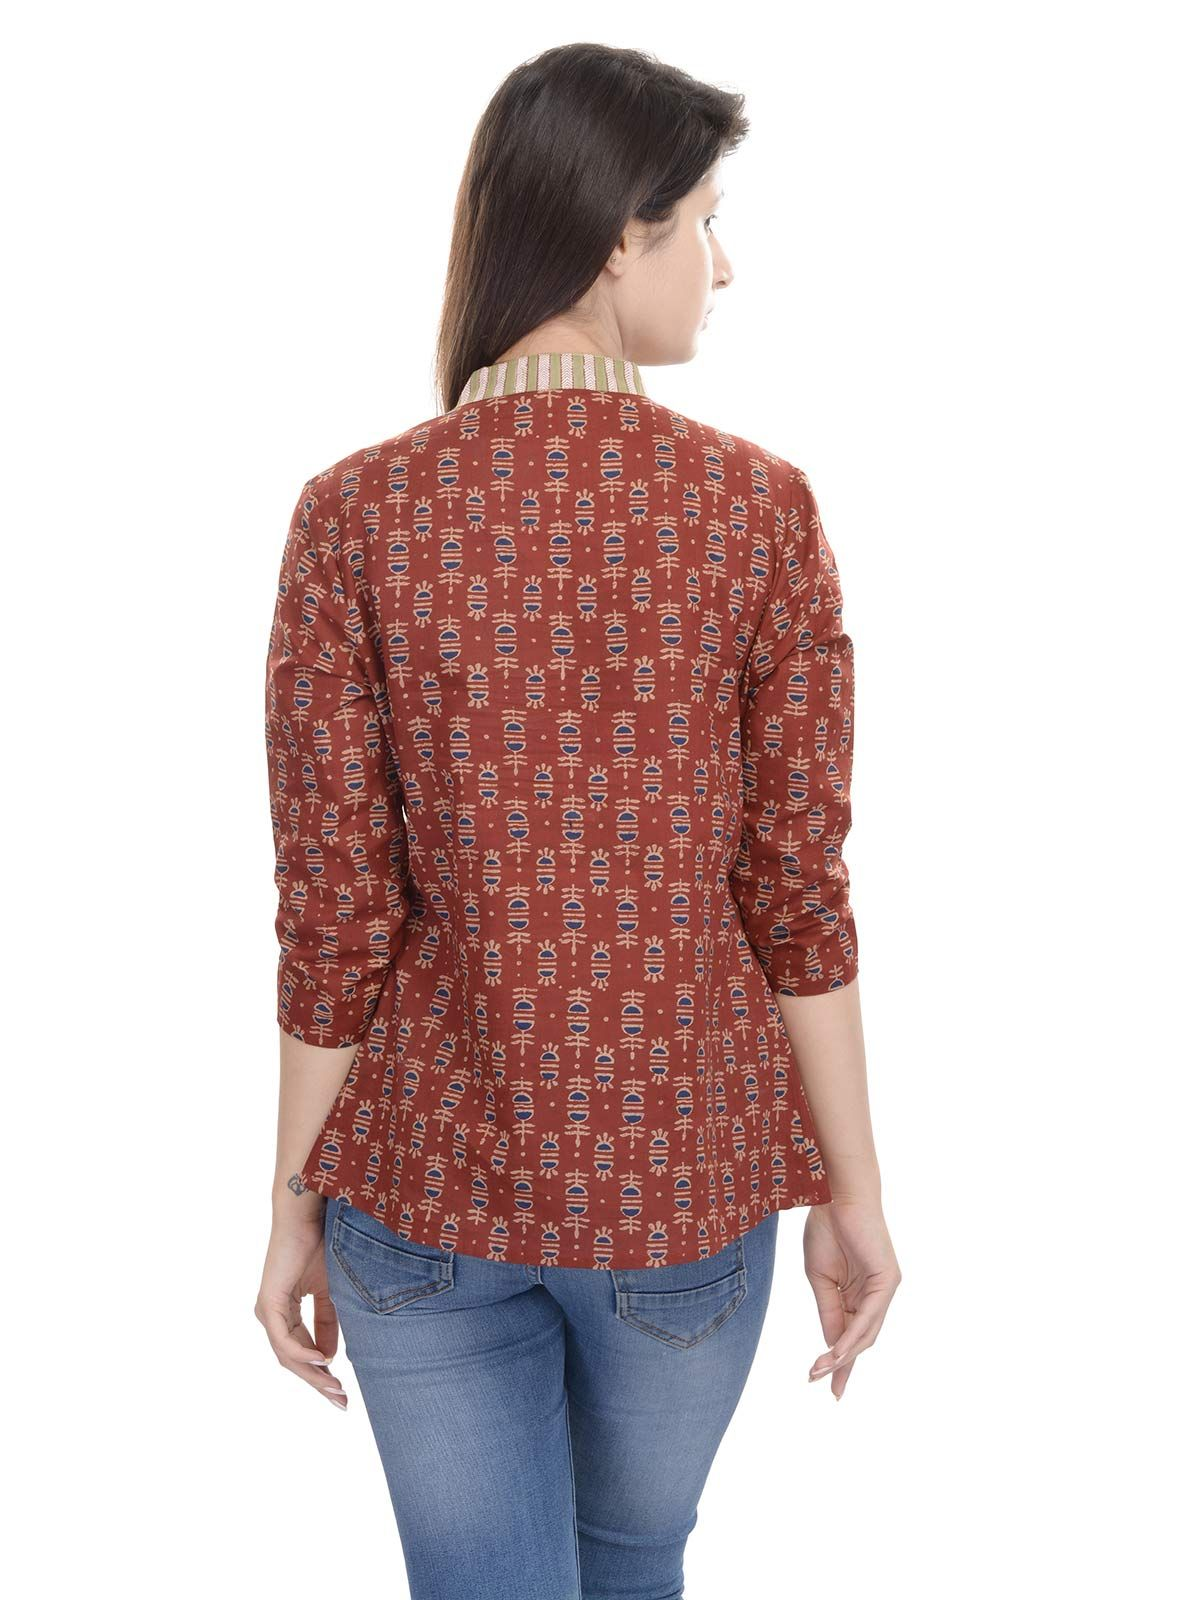 The Tribal Top